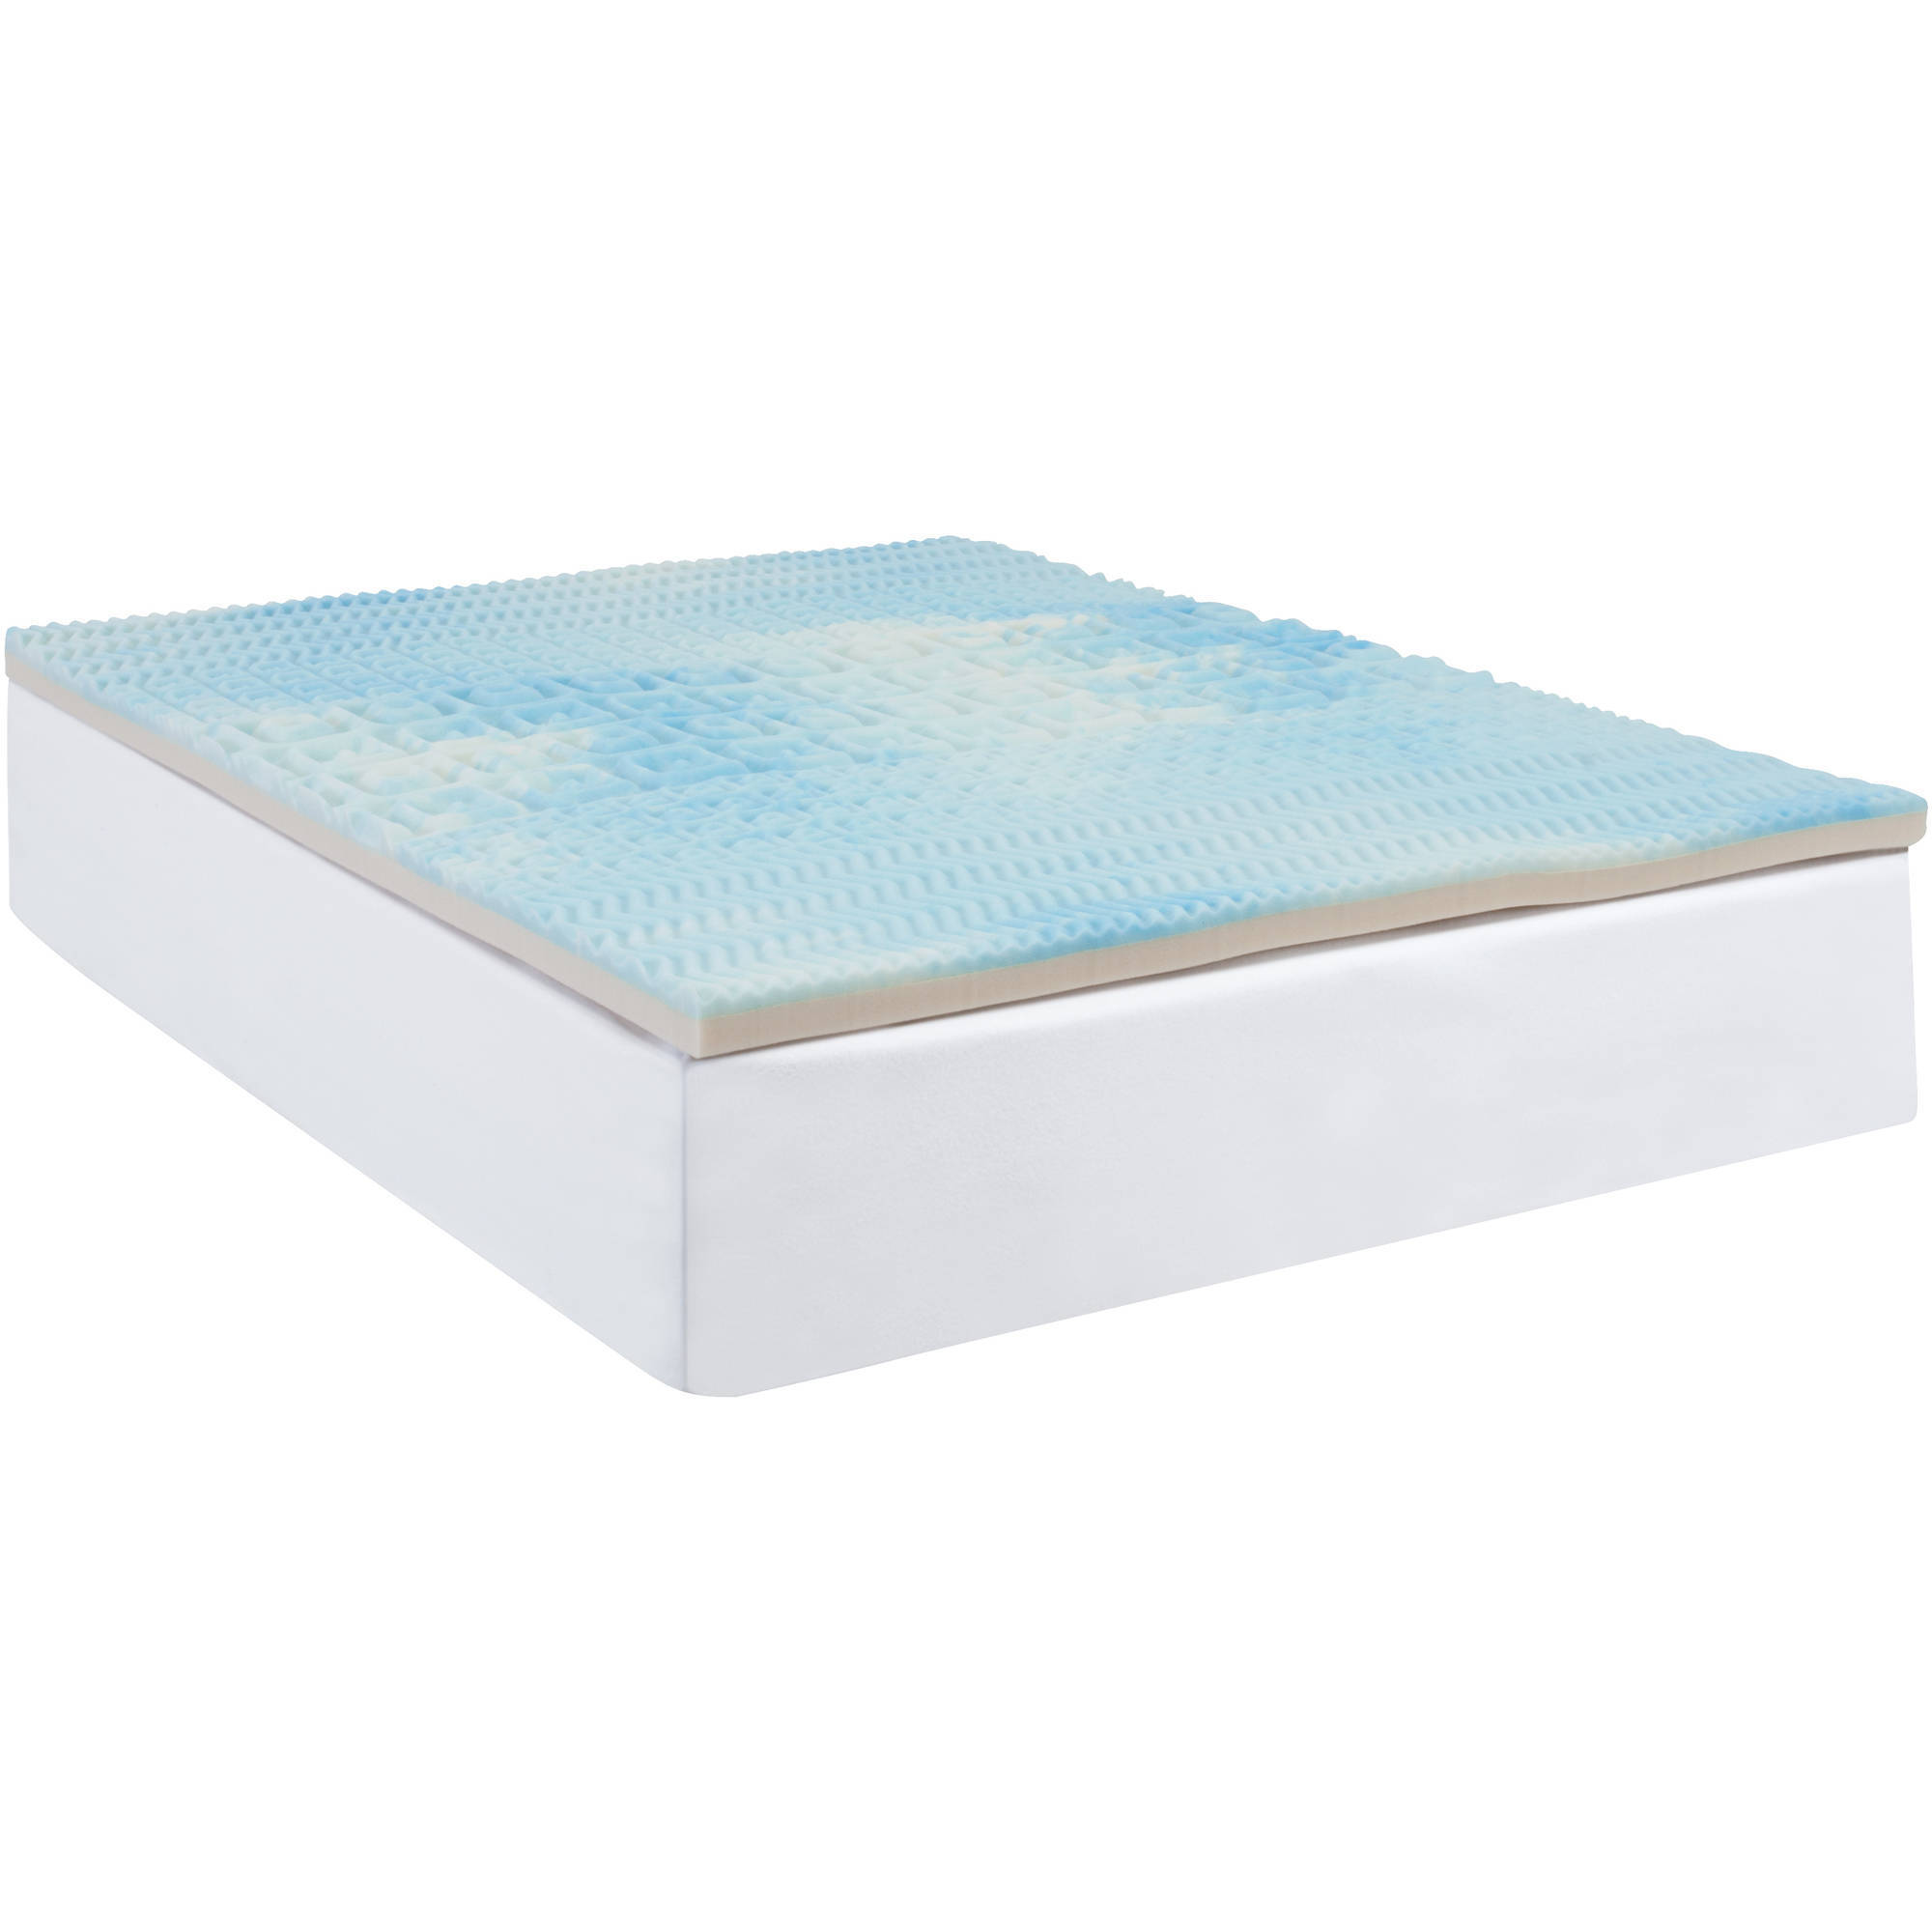 Beautyrest Five Zone Fusion Foam Mattress Topper Multiple Sizes Cooling Gel New Ebay